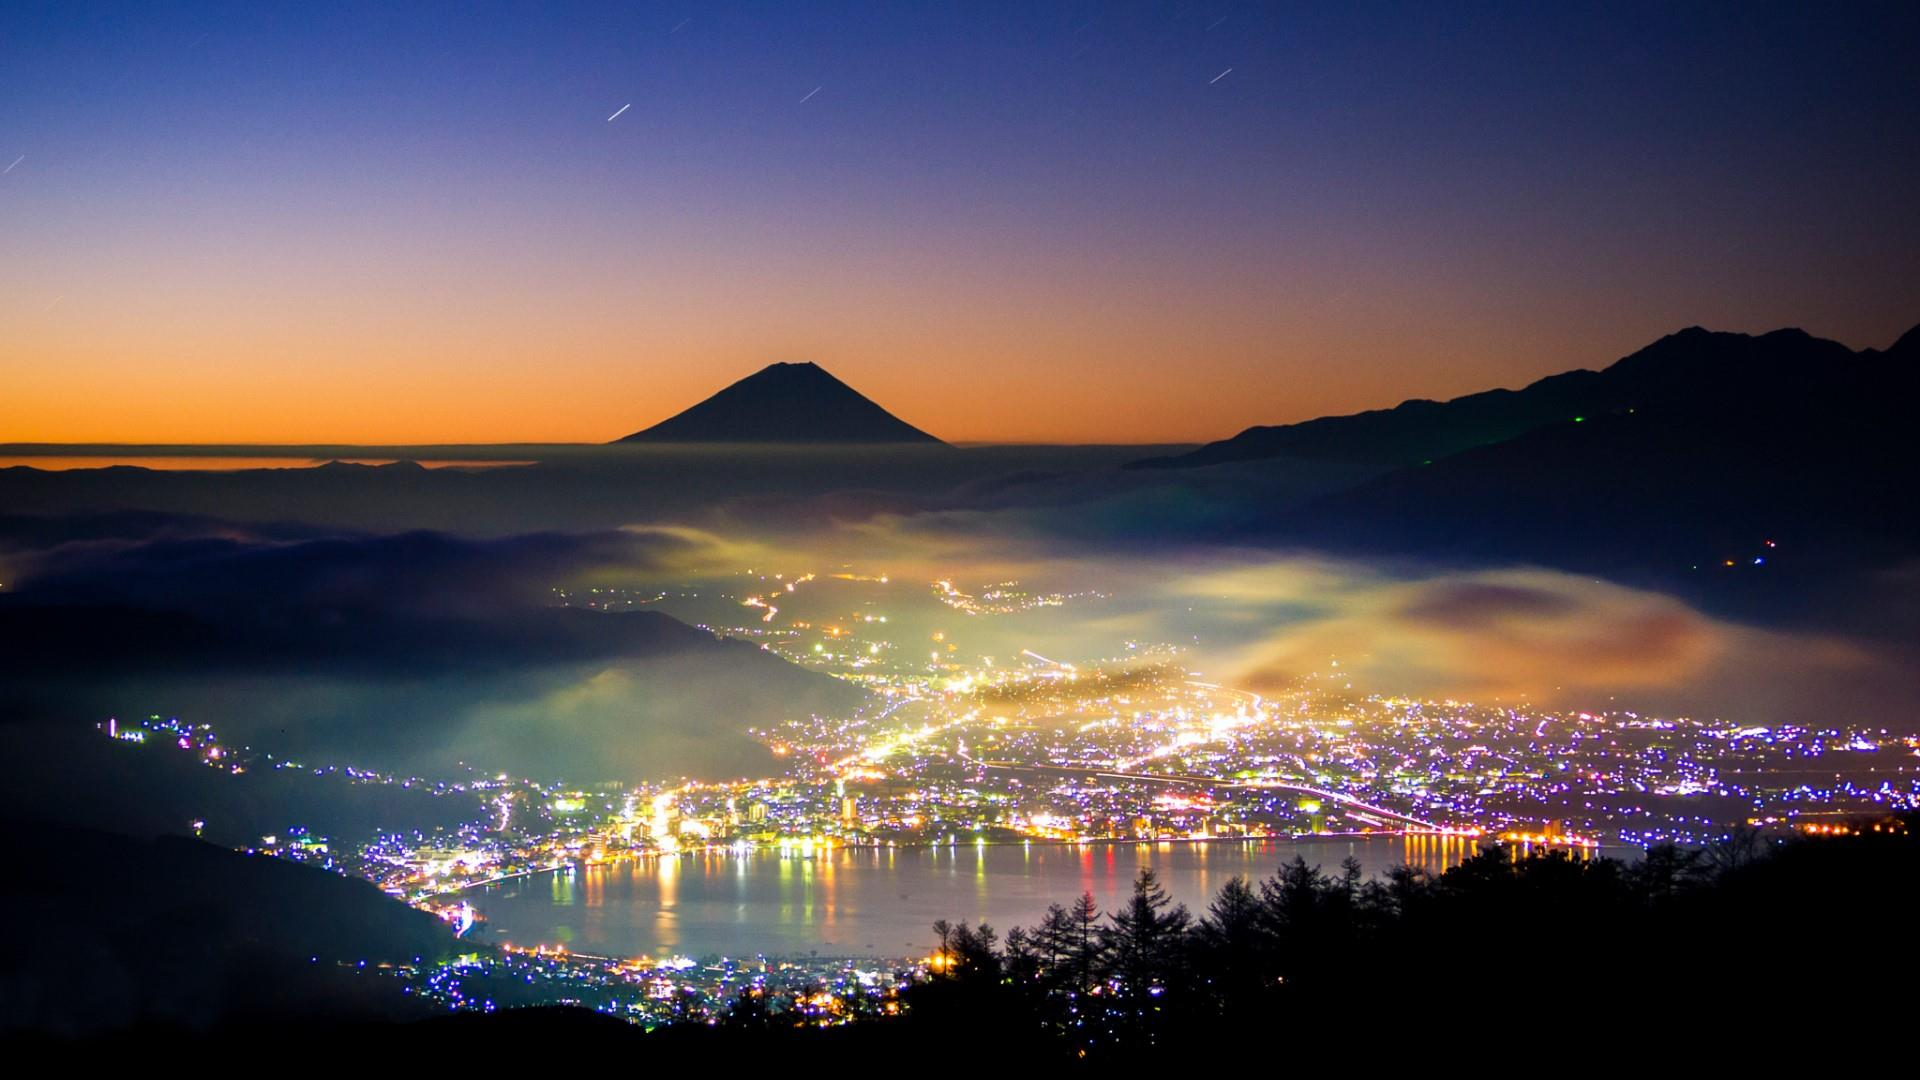 City lights at the foot of the Mount Fuji wallpaper